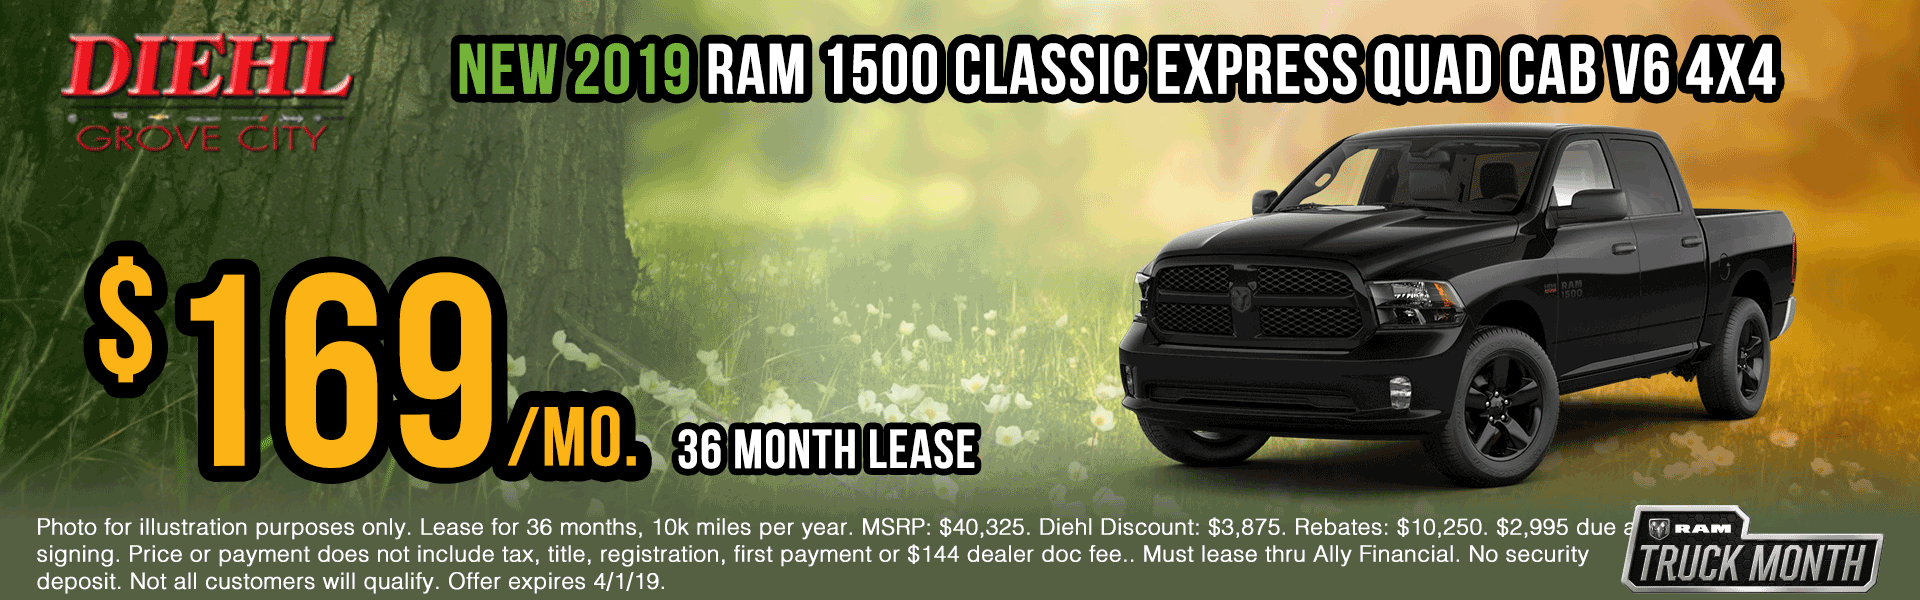 R598-2019-ram-1500-classic-express Spring sales event jeep specials Chrysler specials ram specials dodge specials mopar specials new vehicle specials Diehl automotive Diehl Robinson Diehl of grove city specials lease specials ram truck month